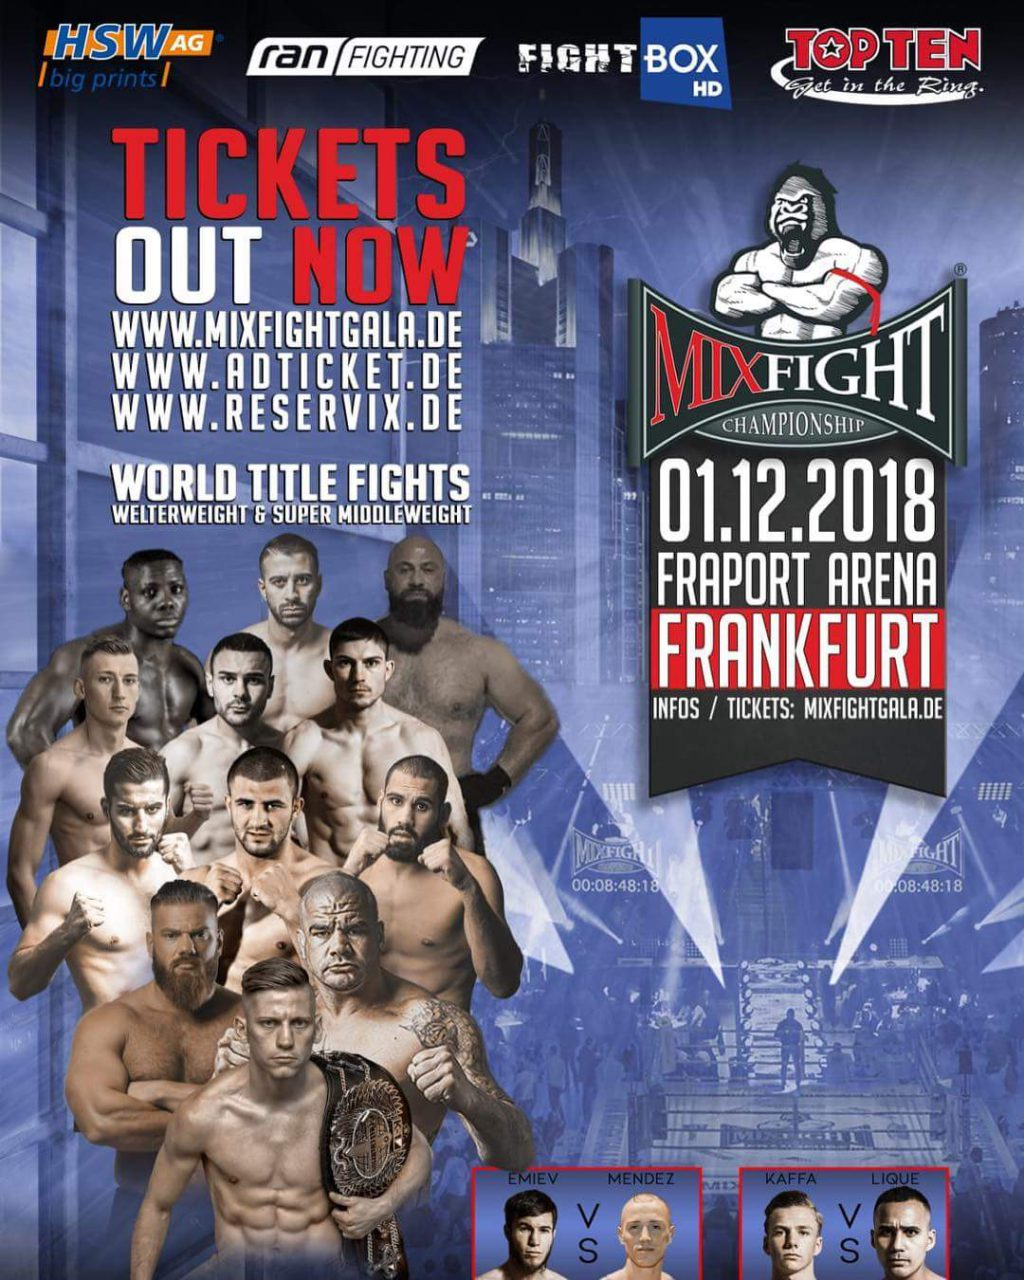 facebook 1539209231319 1024x1280 - MIX FIGHT GALA FRANKFURT 1. DEZ. 2018